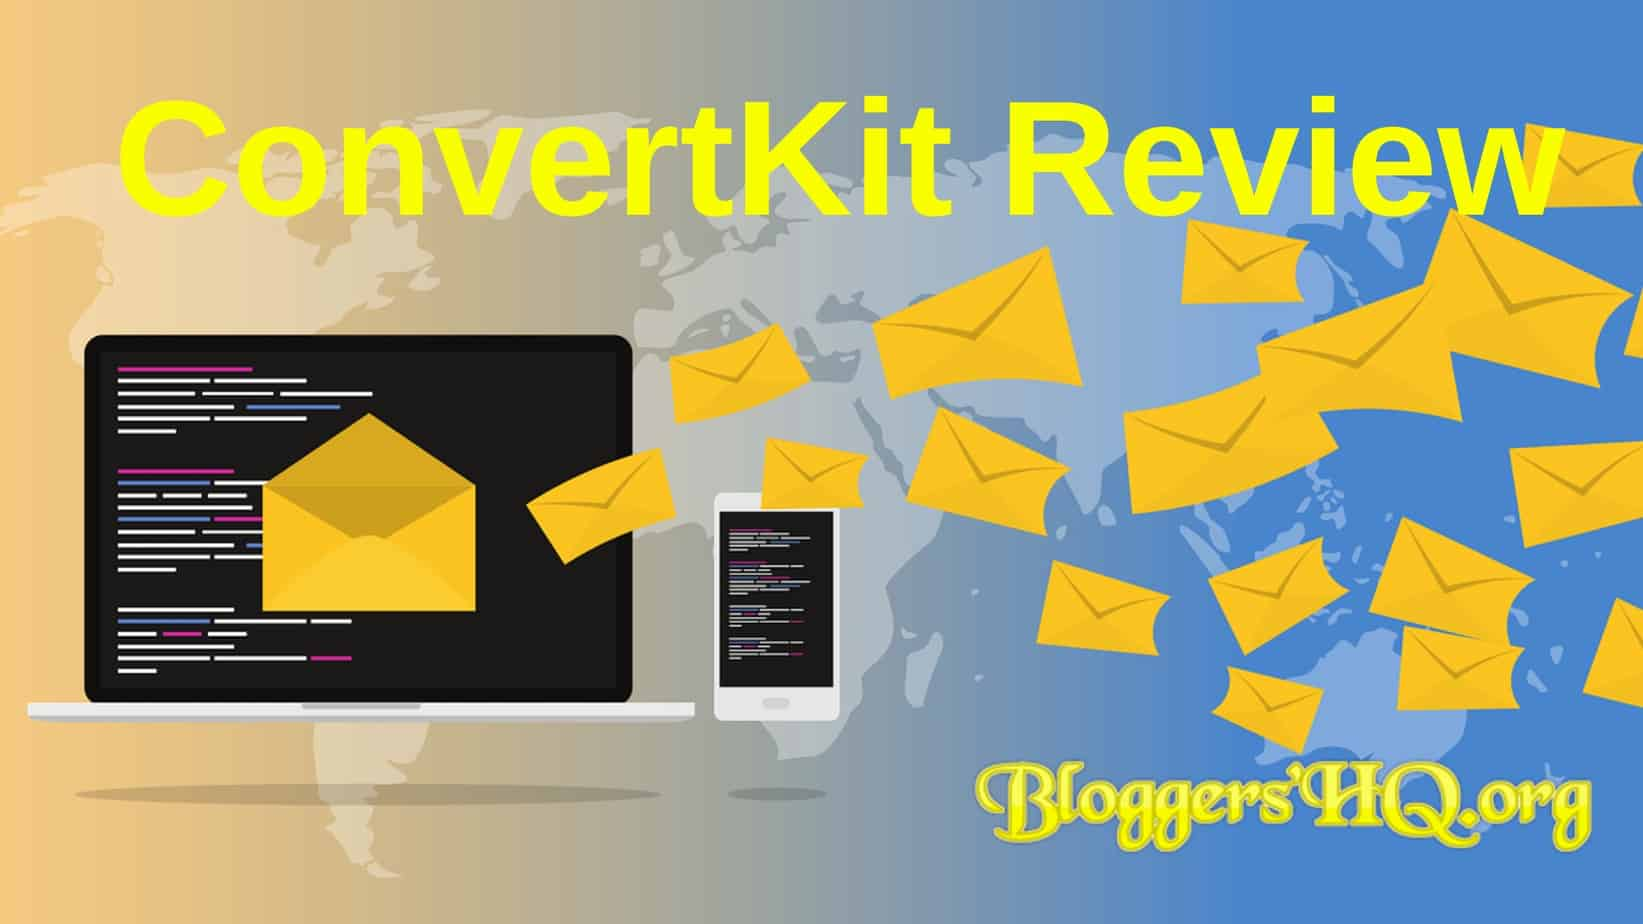 Best Convertkit Services Online Near Me